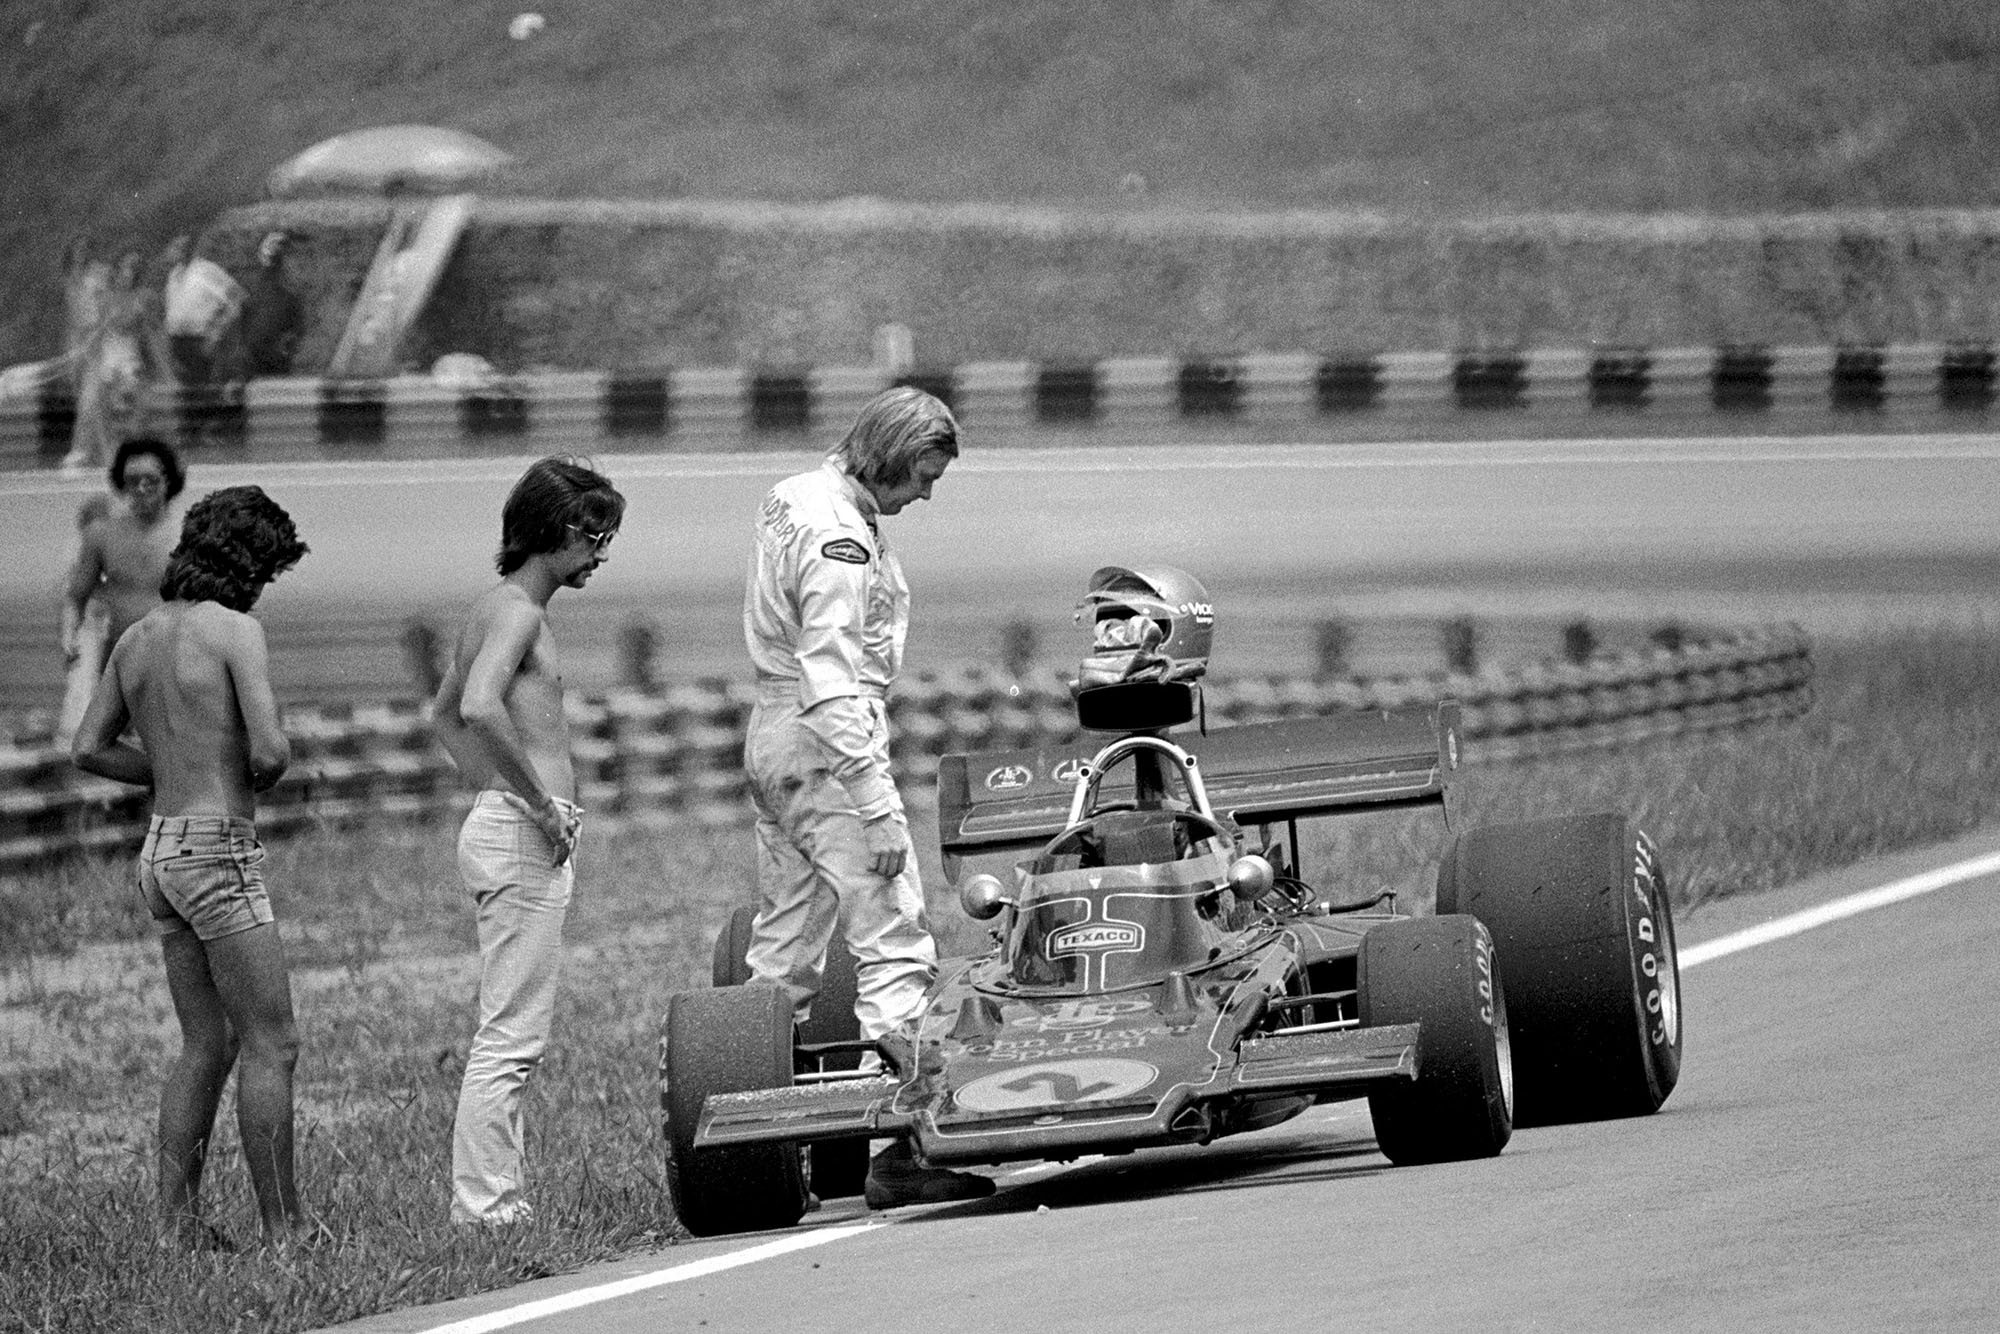 Ronnie Peterson inspects his Lotus car after retiring from the 1973 Brazilian Grand Prix.